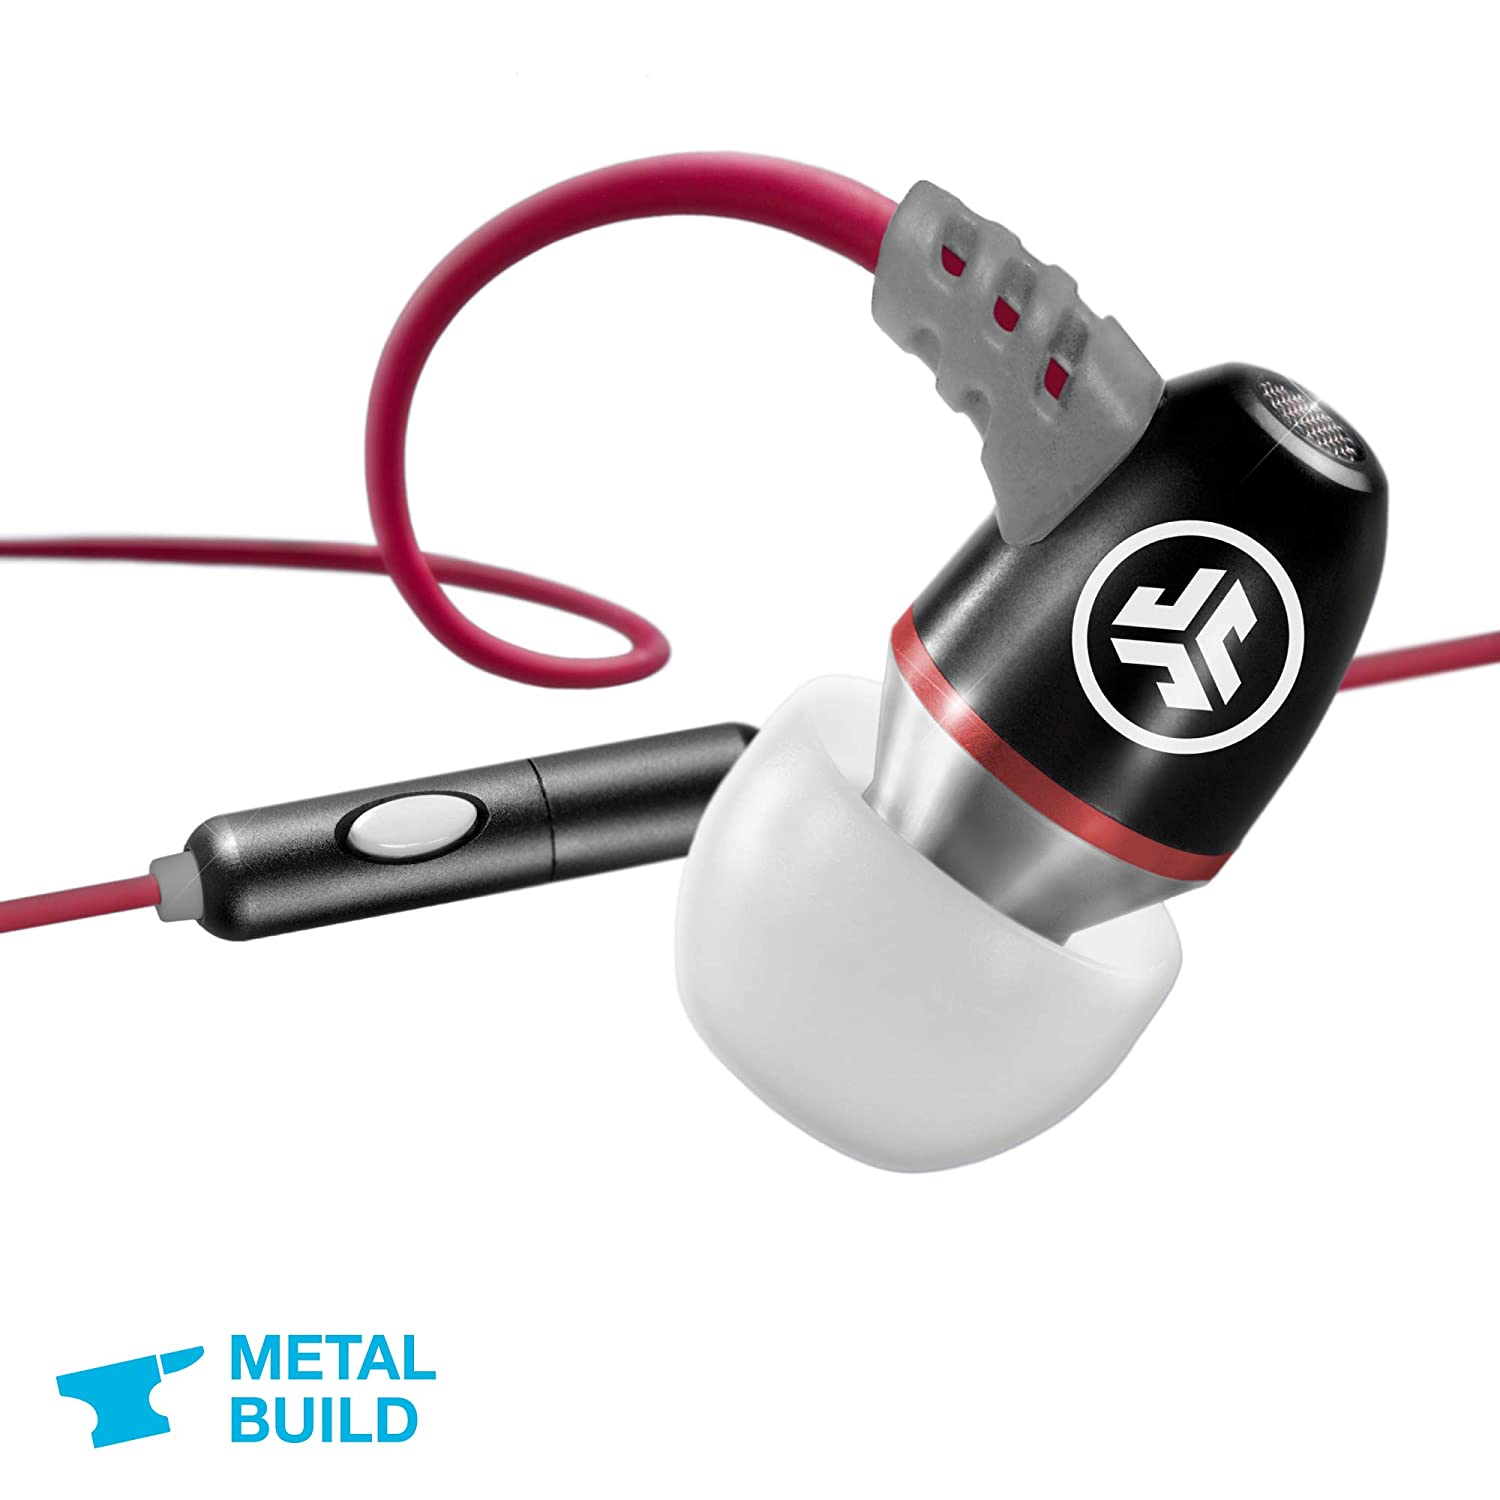 JLab Audio JBuds Metal In-Ear Earbuds with Universal Mic for iPhone & Android, GUARANTEED FOR LIFE- Sneaker